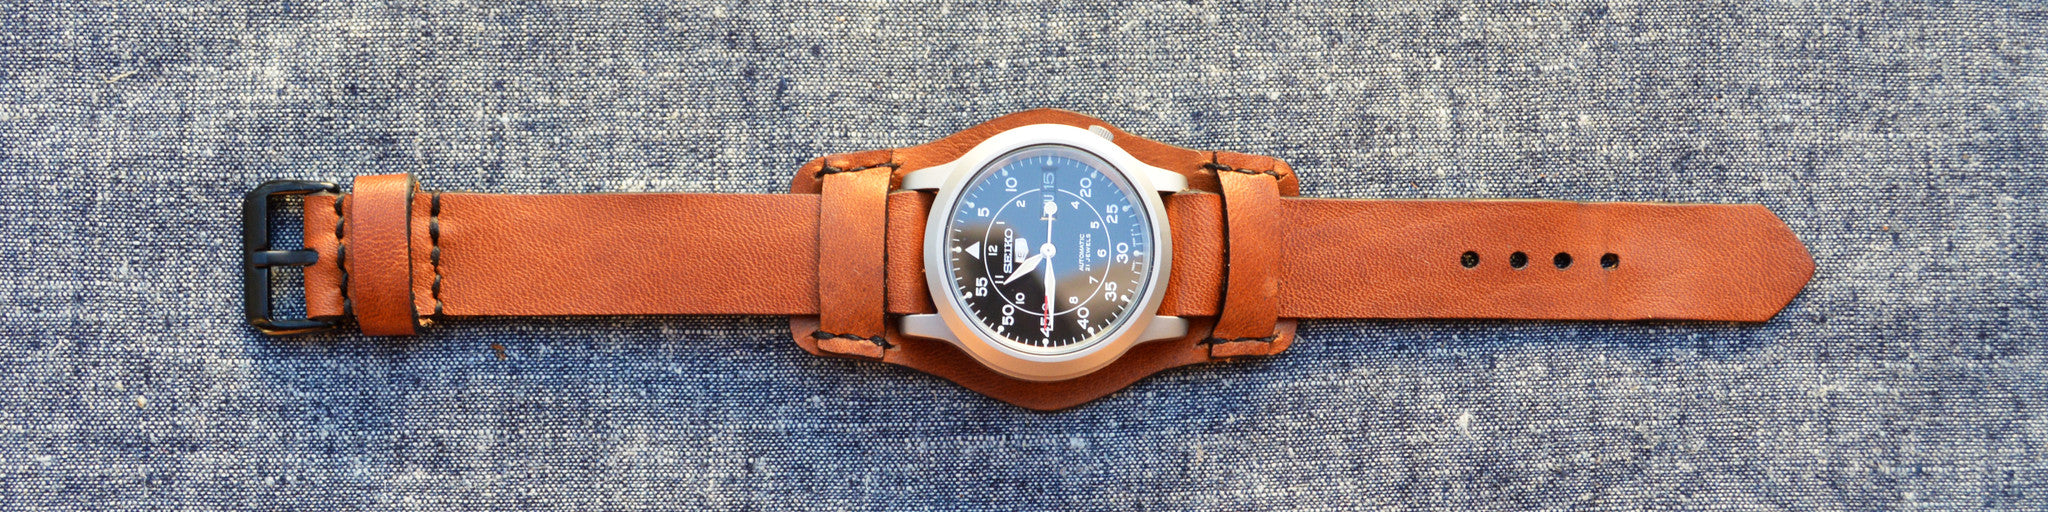 One-Piece Watch Strap